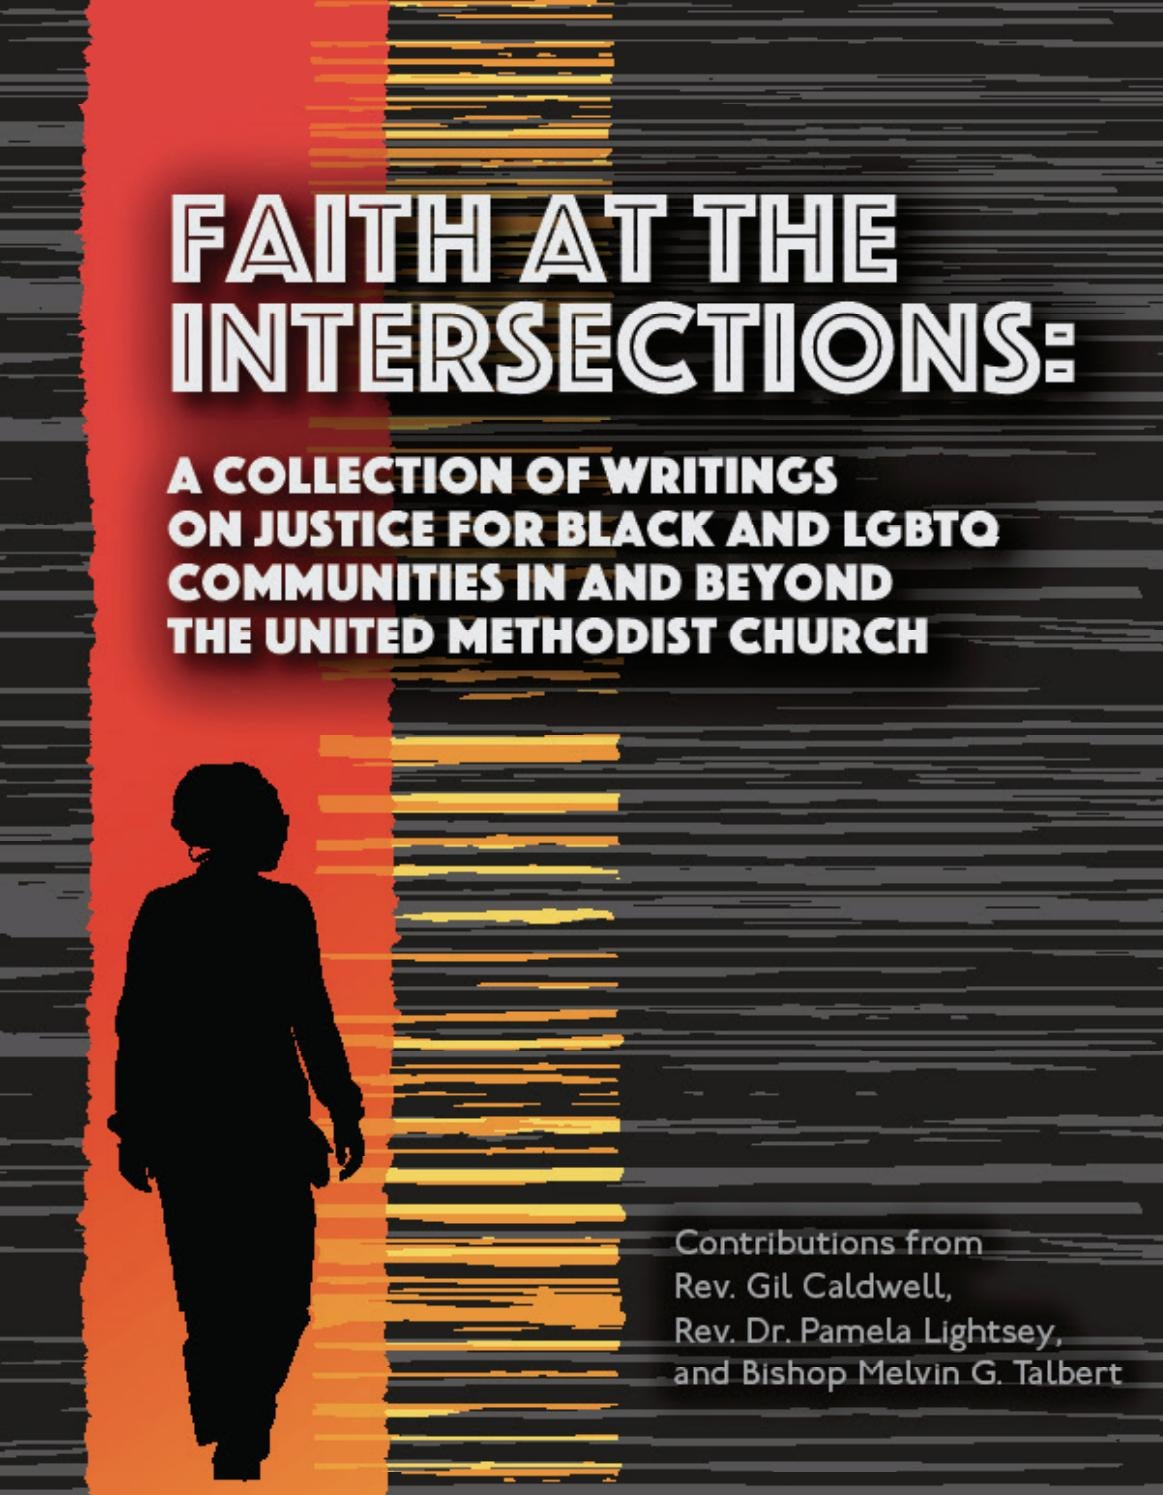 Faith at the intersections: A collection by Reconciling